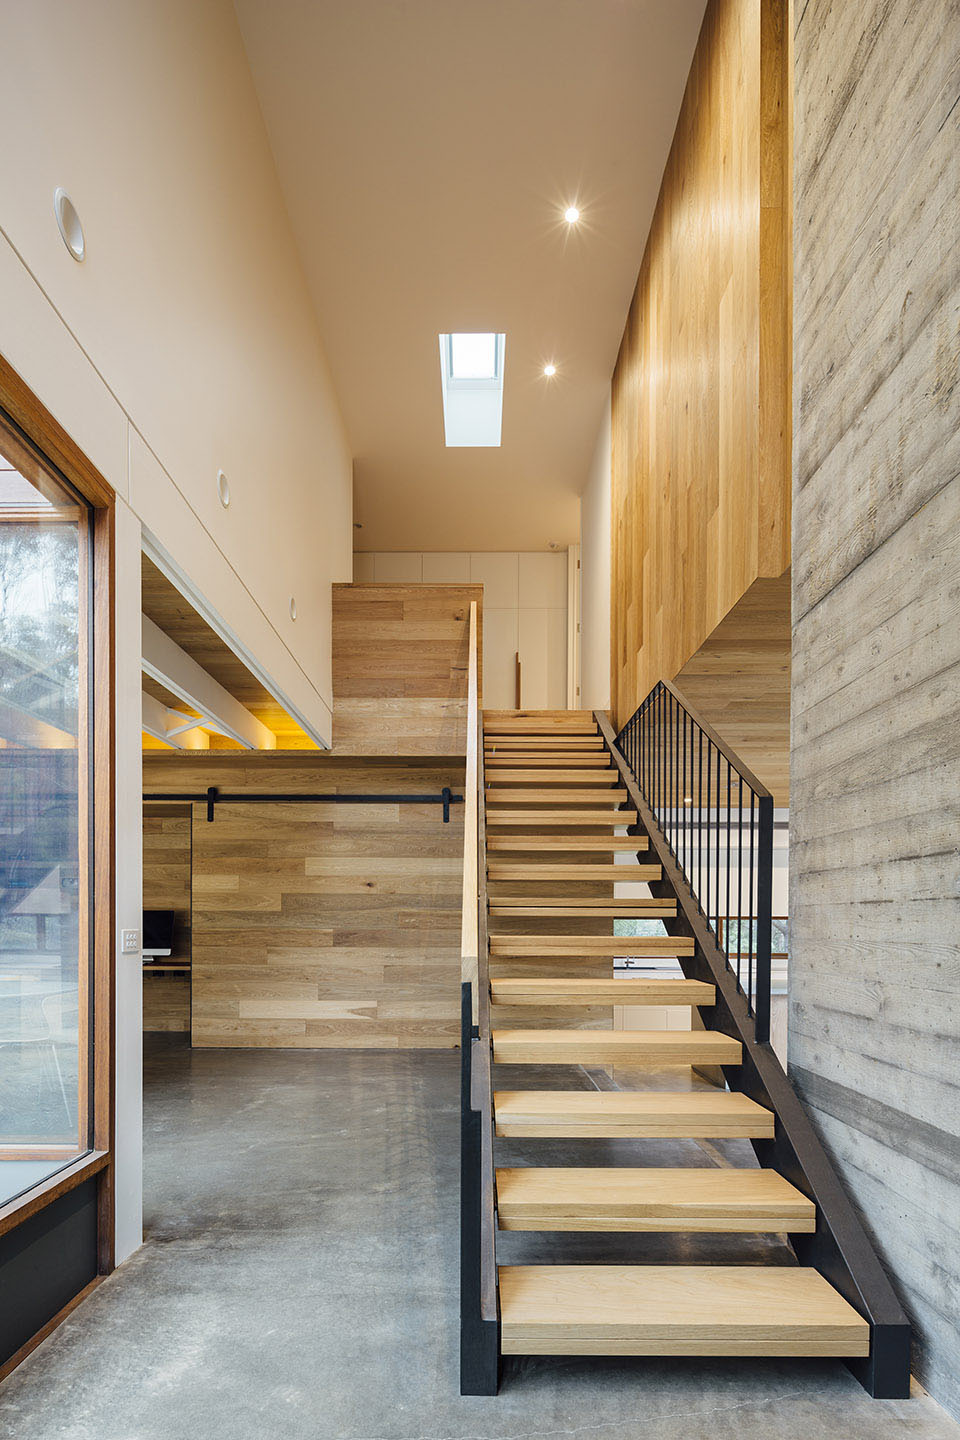 019-Invermay-House-By-Moloney-Architects.jpg